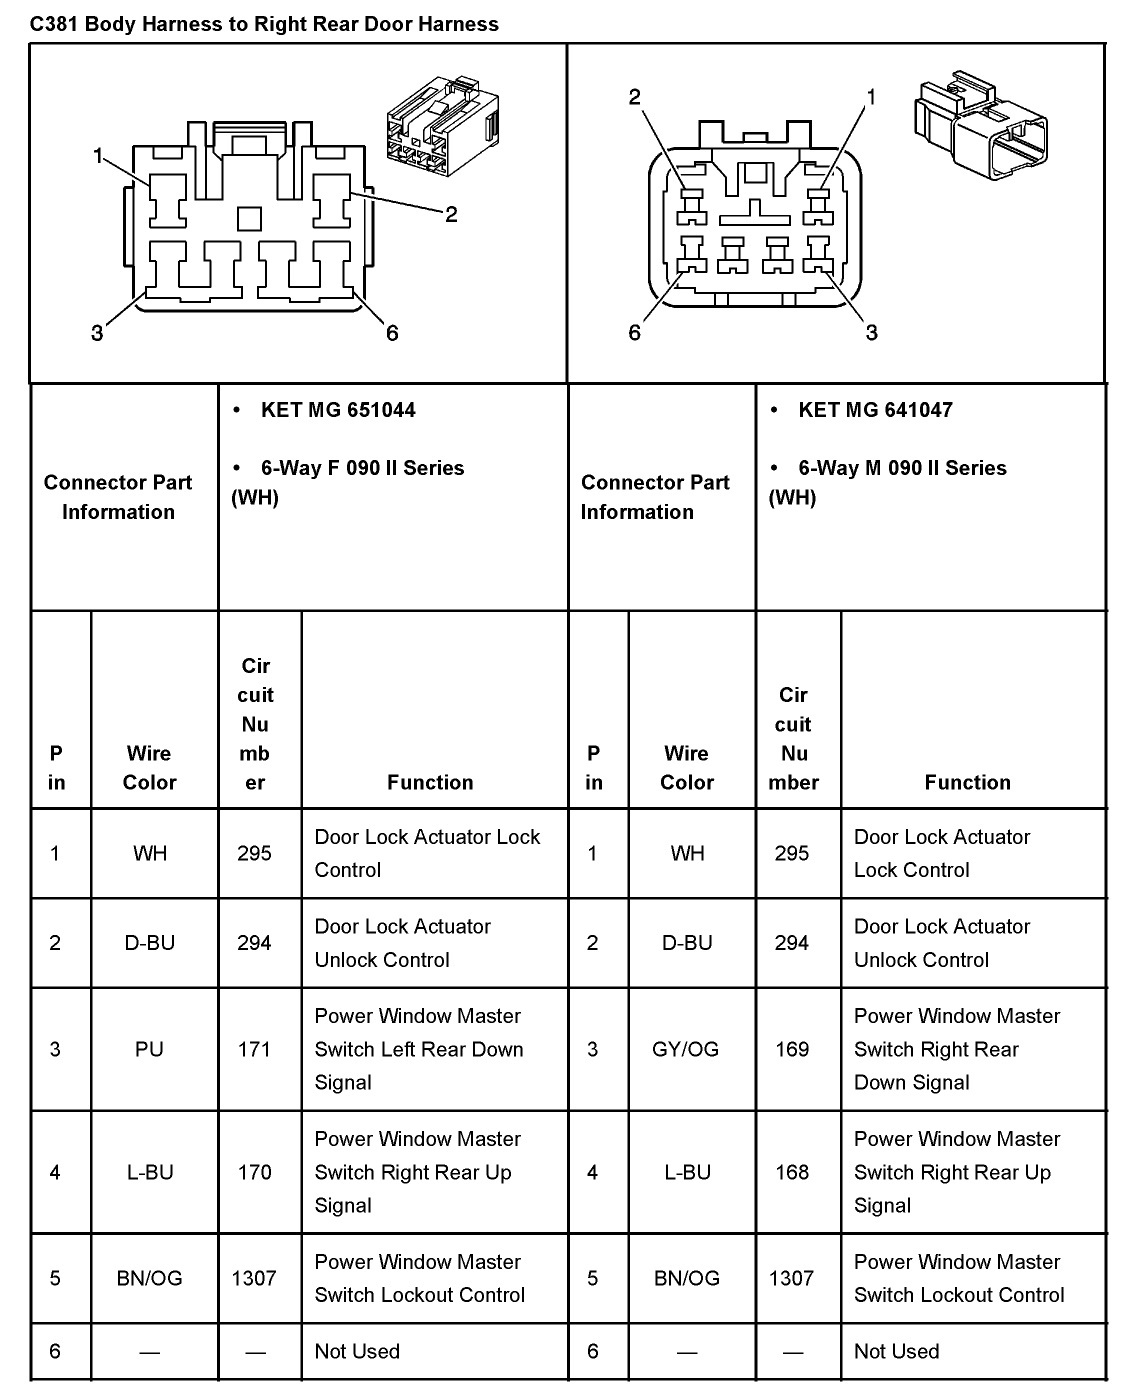 2007 Chevrolet Aveo Fuse Box Reinvent Your Wiring Diagram 2004 Chevy Impala Relaydiagrampassenger Side Block For Detailed Schematics Rh Lelandlutheran Com Cobalt Location 2011